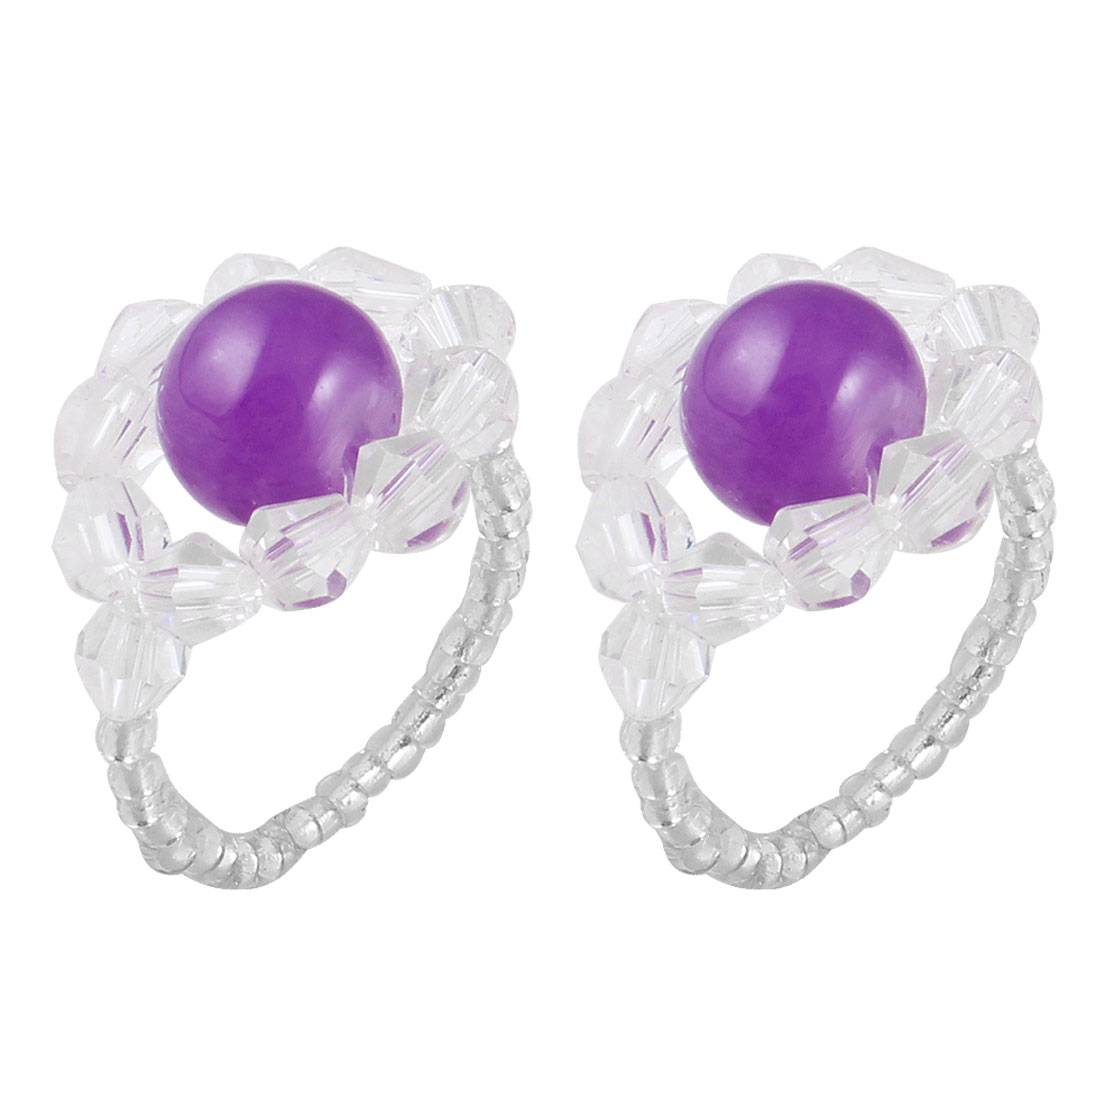 2 Pcs Women Faceted Round Bead Finger Ring White Purple US 6